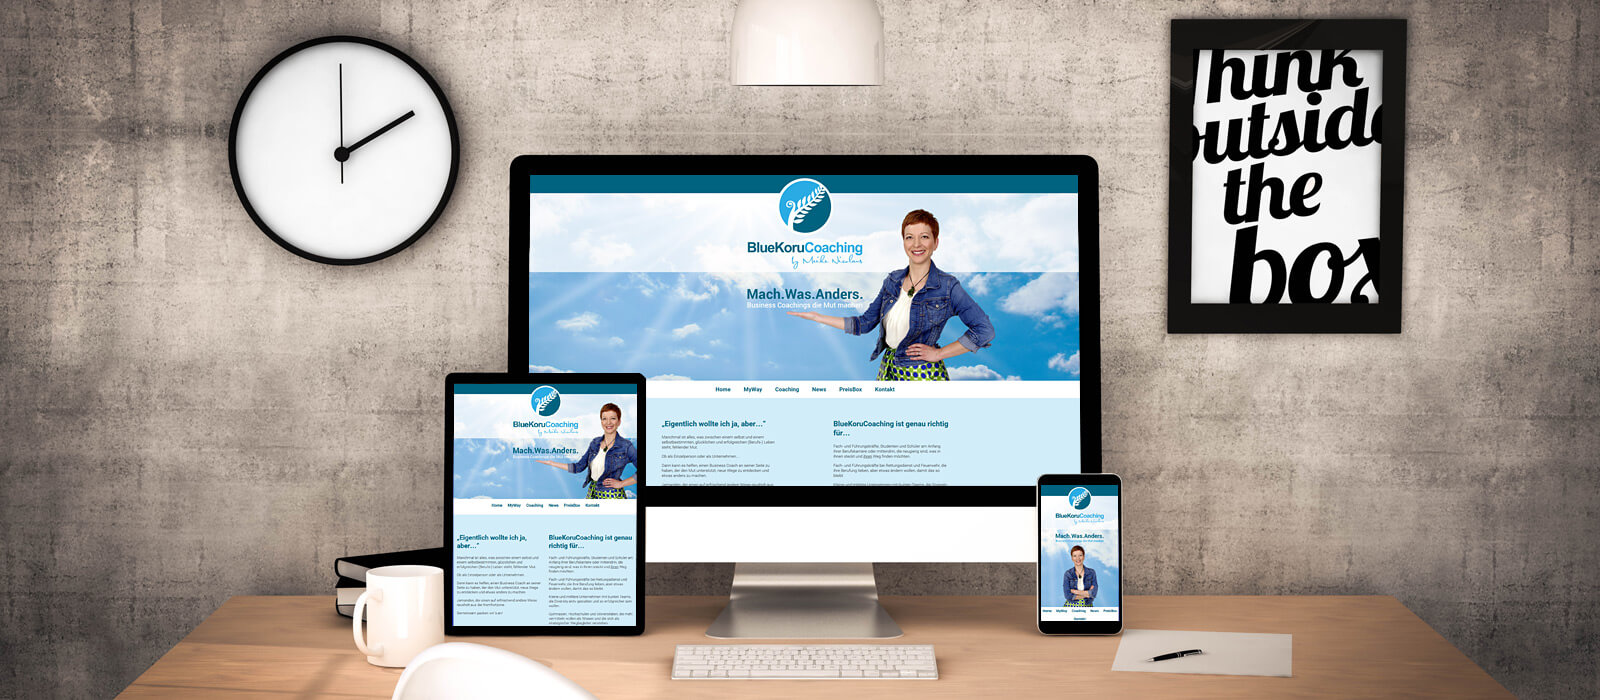 BlueKoruCoaching - Webseite und Webdesign von der Internetagentur LIQUID-ARTWORK in Baden-Baden